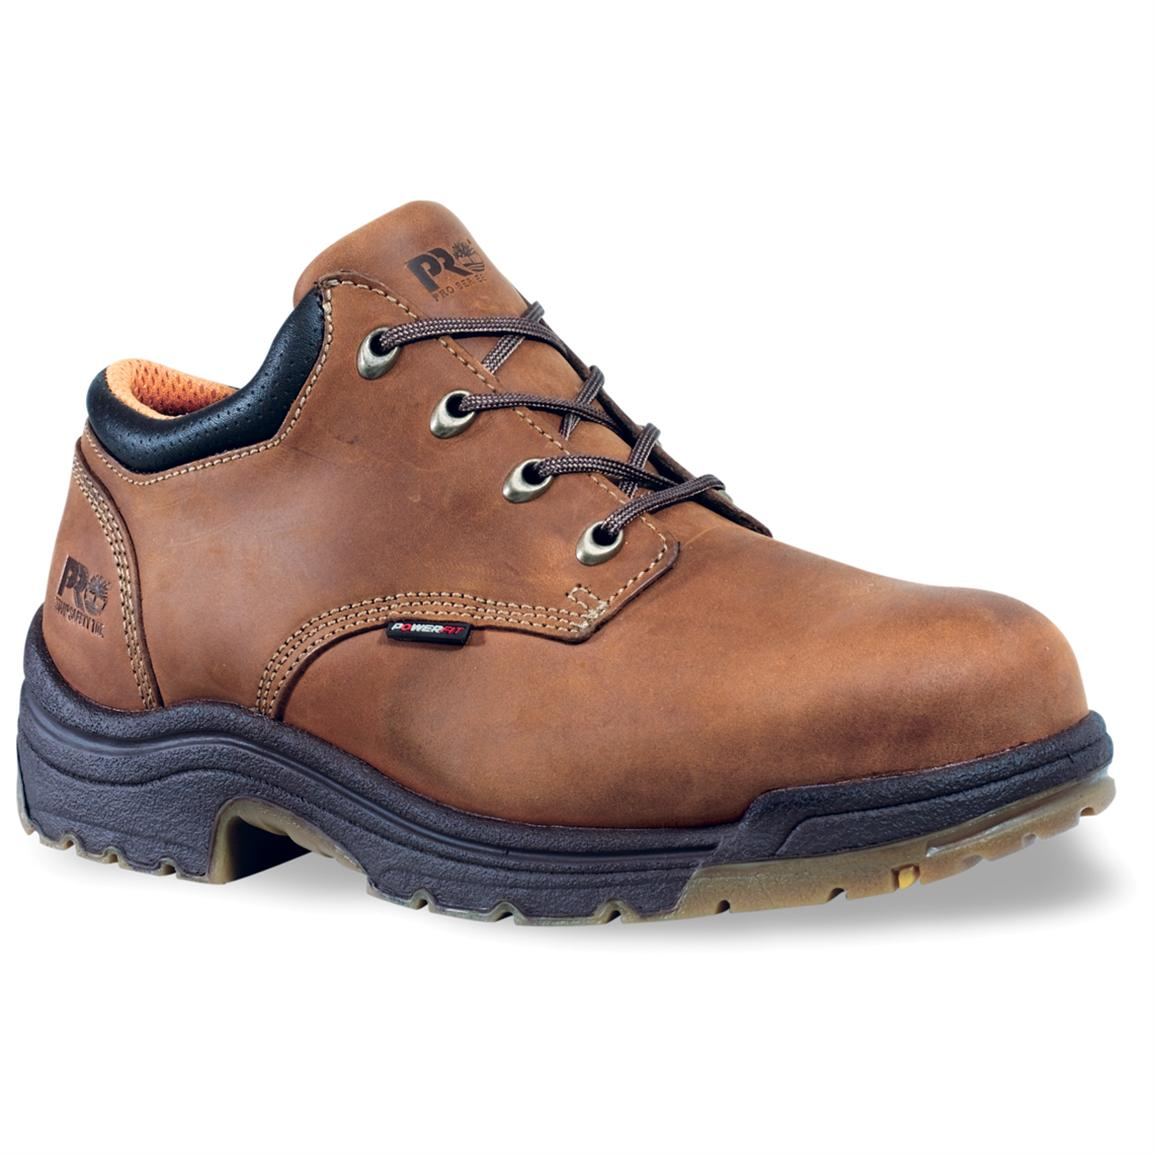 Men's Timberland® Pro® Titan® Safety Toe Oxford Shoes, Trail Brown